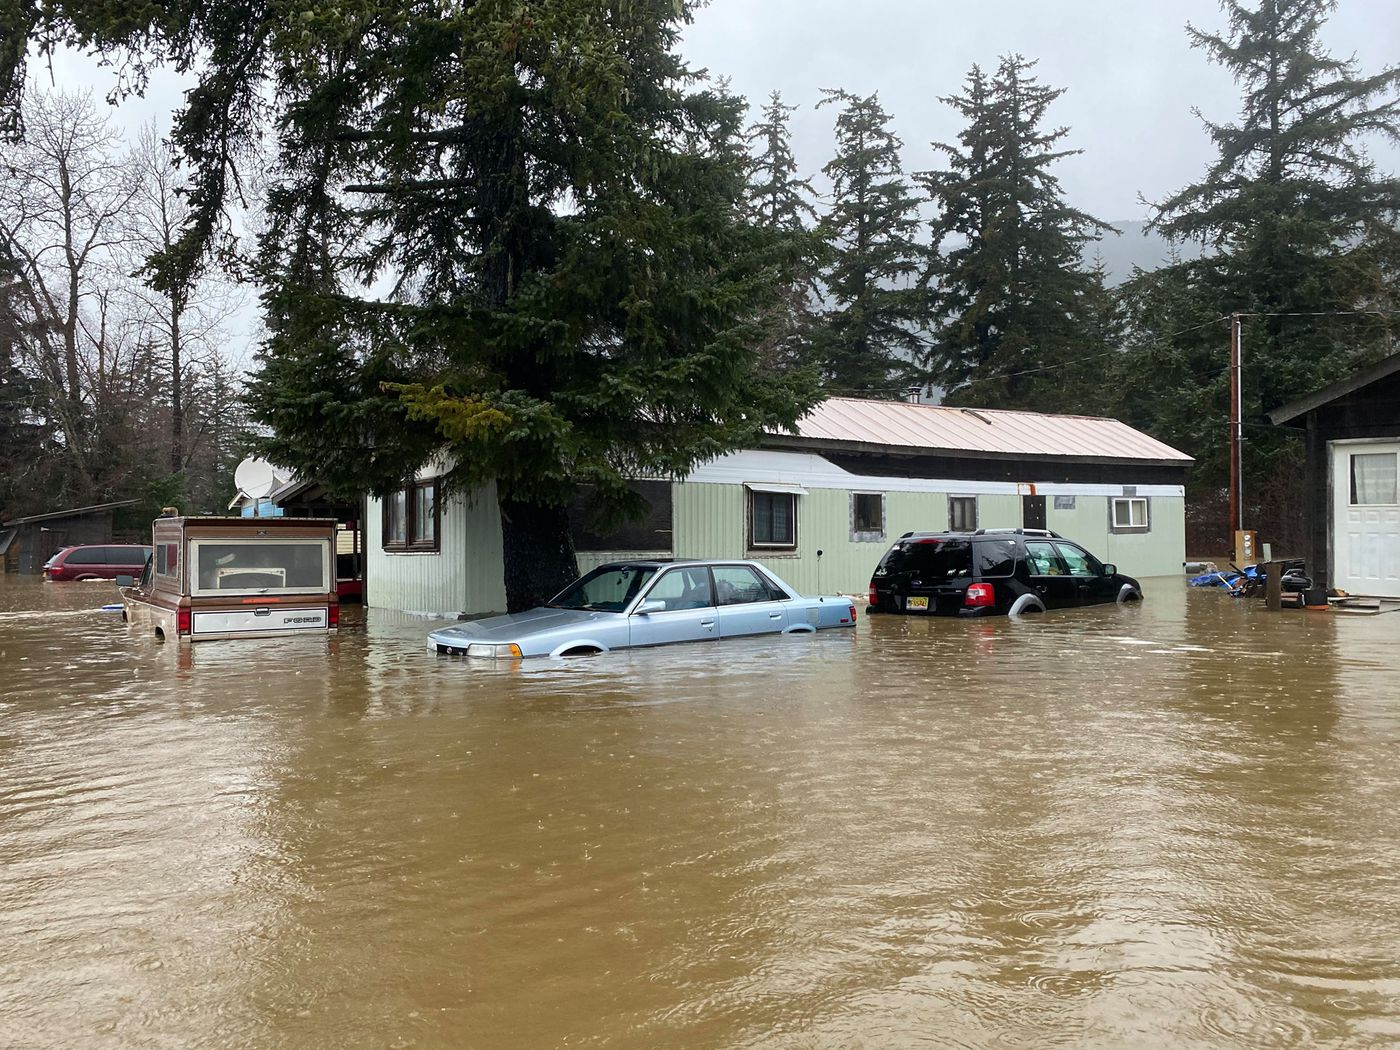 Homes and vehicles are surrounded by floodwater in Haines on Dec. 2, 2020, (Kaitlyn Tolin photo)